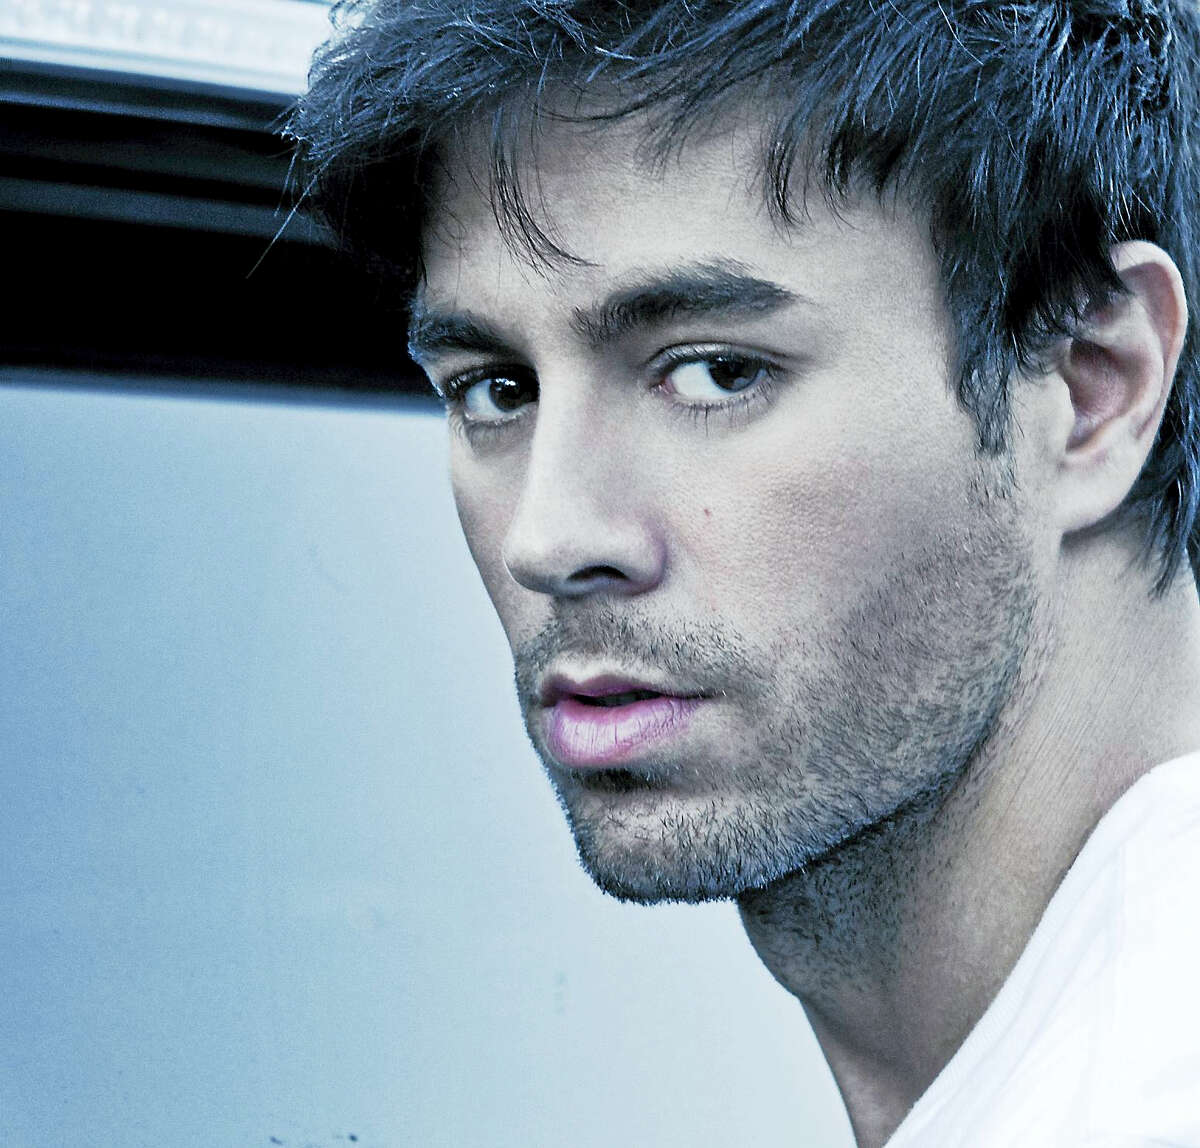 Enrique Iglesias will play shows at Foxwoods on Thursday and Friday.